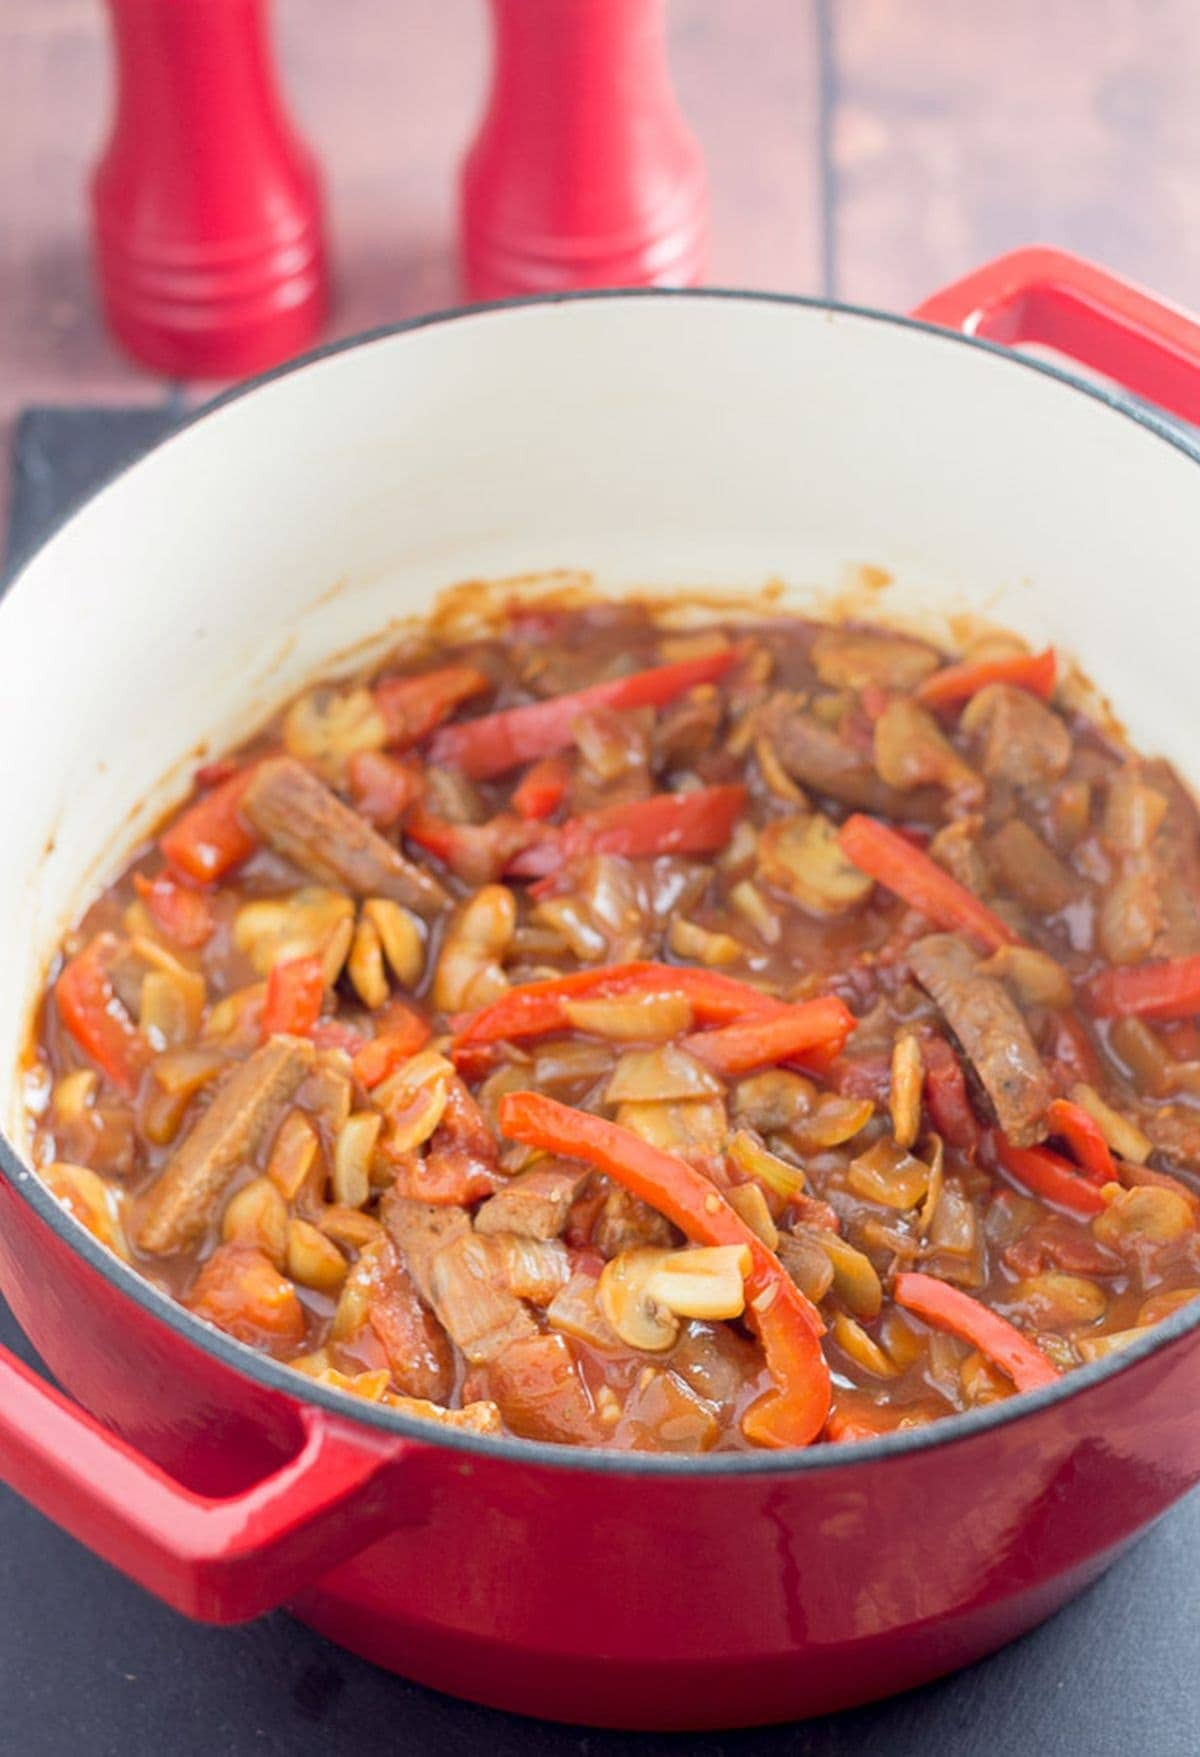 A pot of cooked and ready to serve venison sausage casserole.